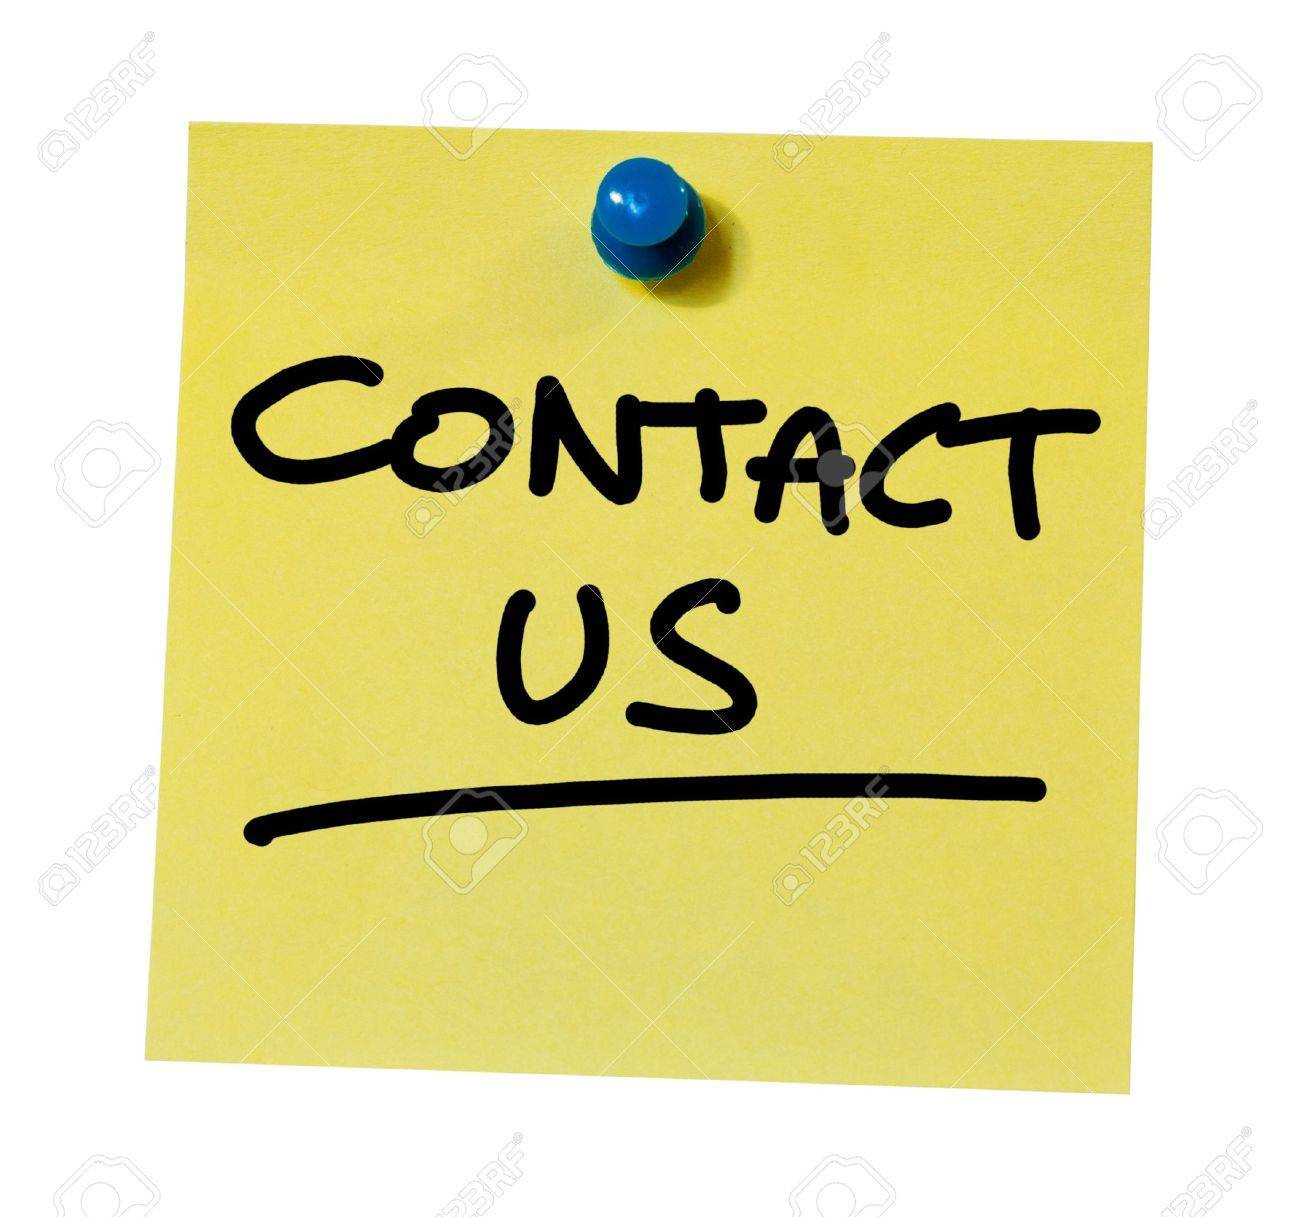 Contact us written on a sticky note Stock Photo - 14168971